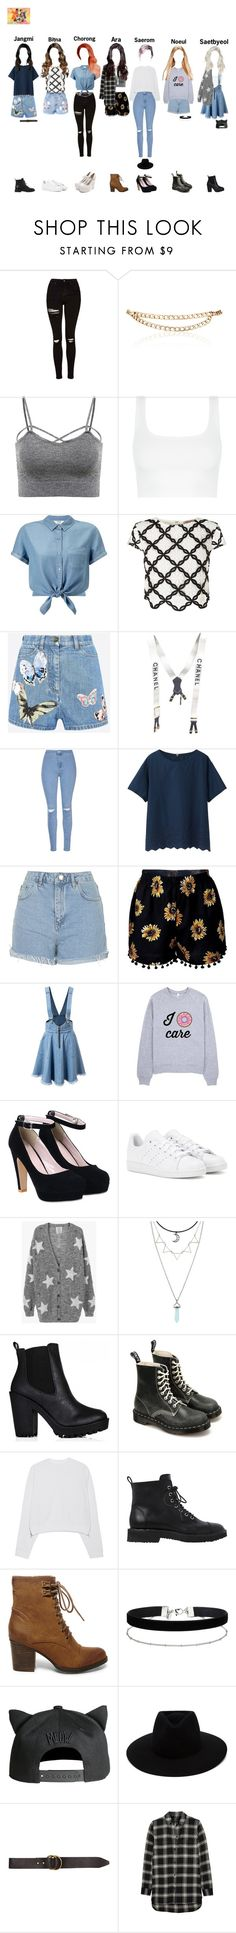 """WEEKLY IDOL - C.U.T.E's Second Appearance"" by kkum-yeoja ❤ liked on Polyvore featuring Topshop, Maison Mayle, Miss Selfridge, Lipsy, Valentino, Chanel, Glamorous, Uniqlo, adidas and Zoe Karssen"